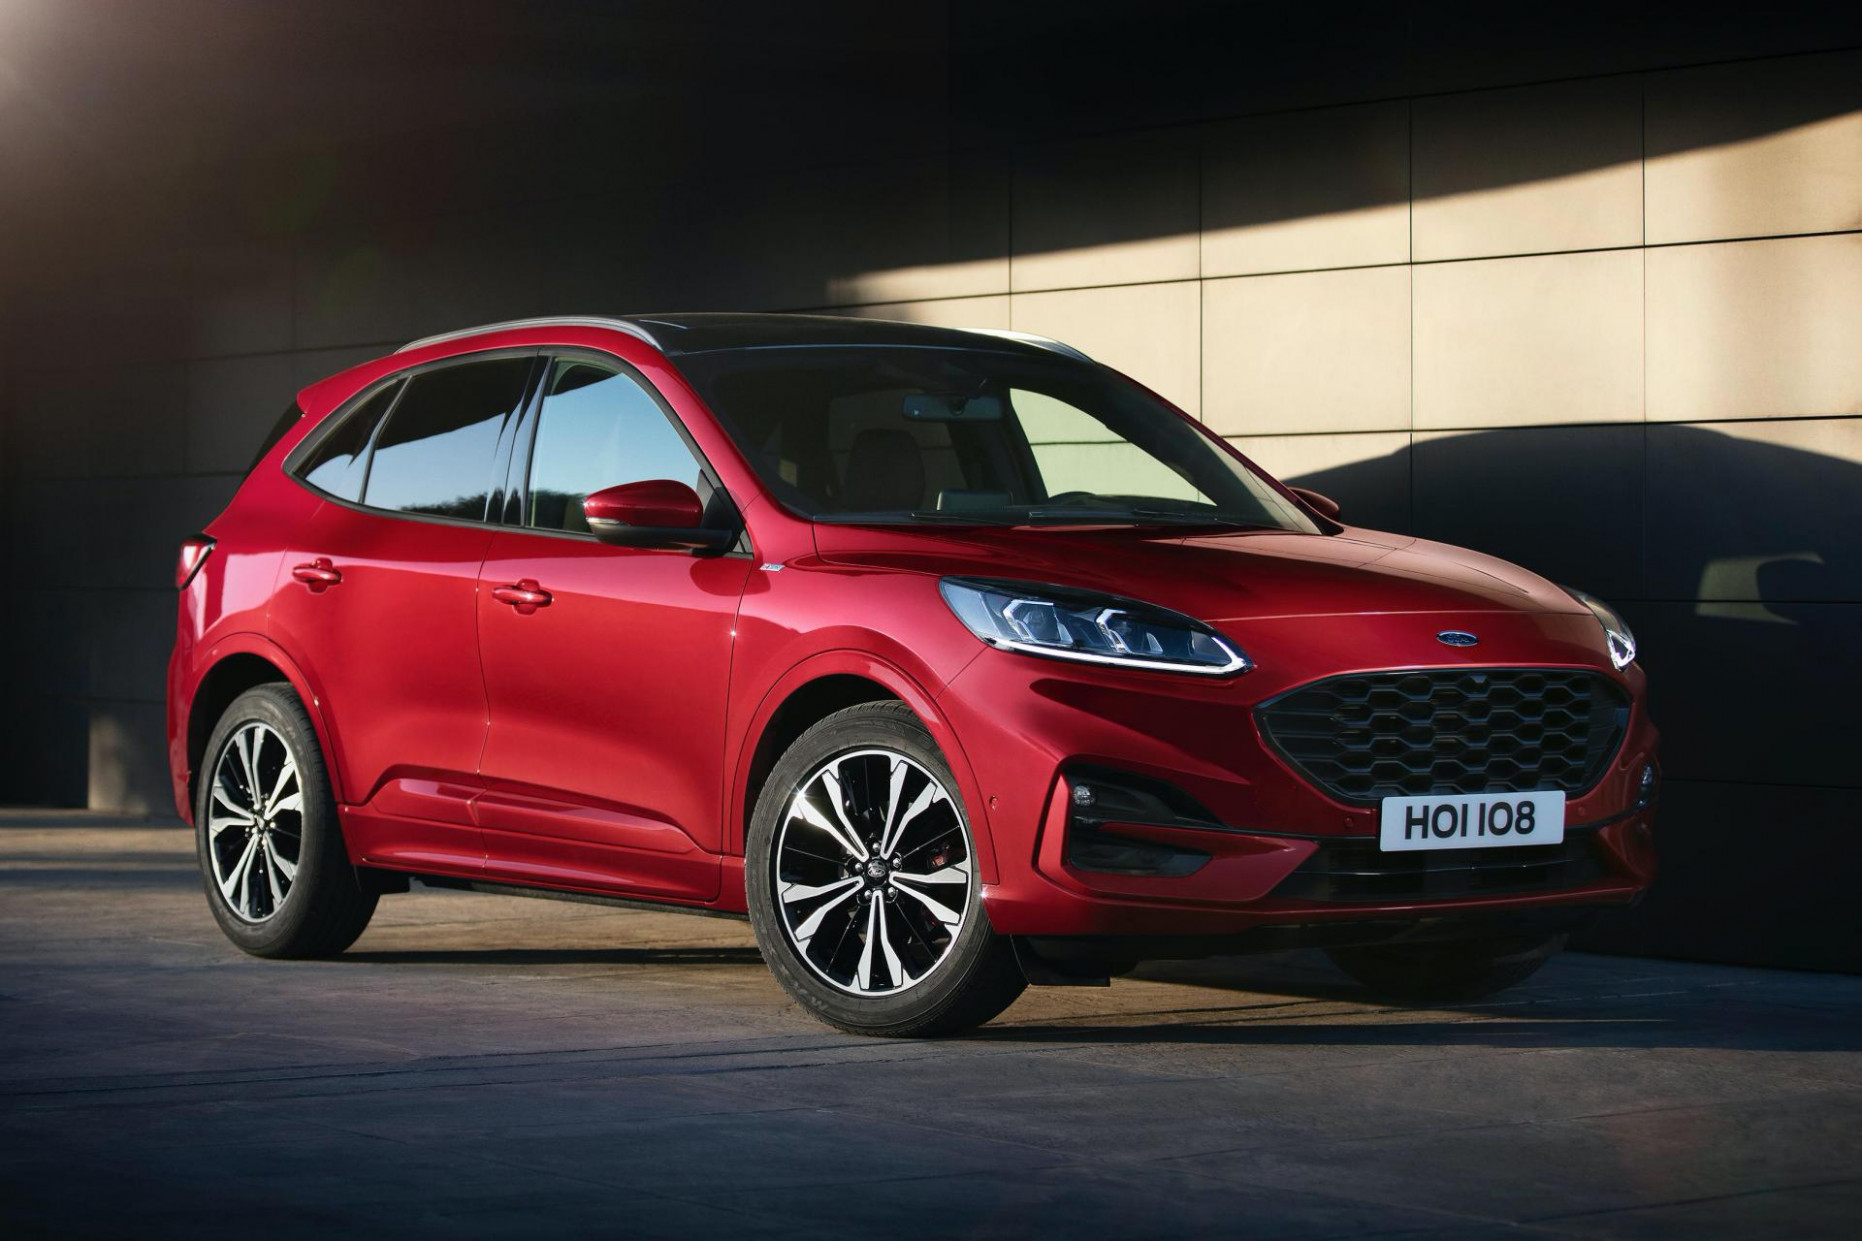 8 Ford Kuga Starts From £8,8 In The UK, Adds £8 To ..